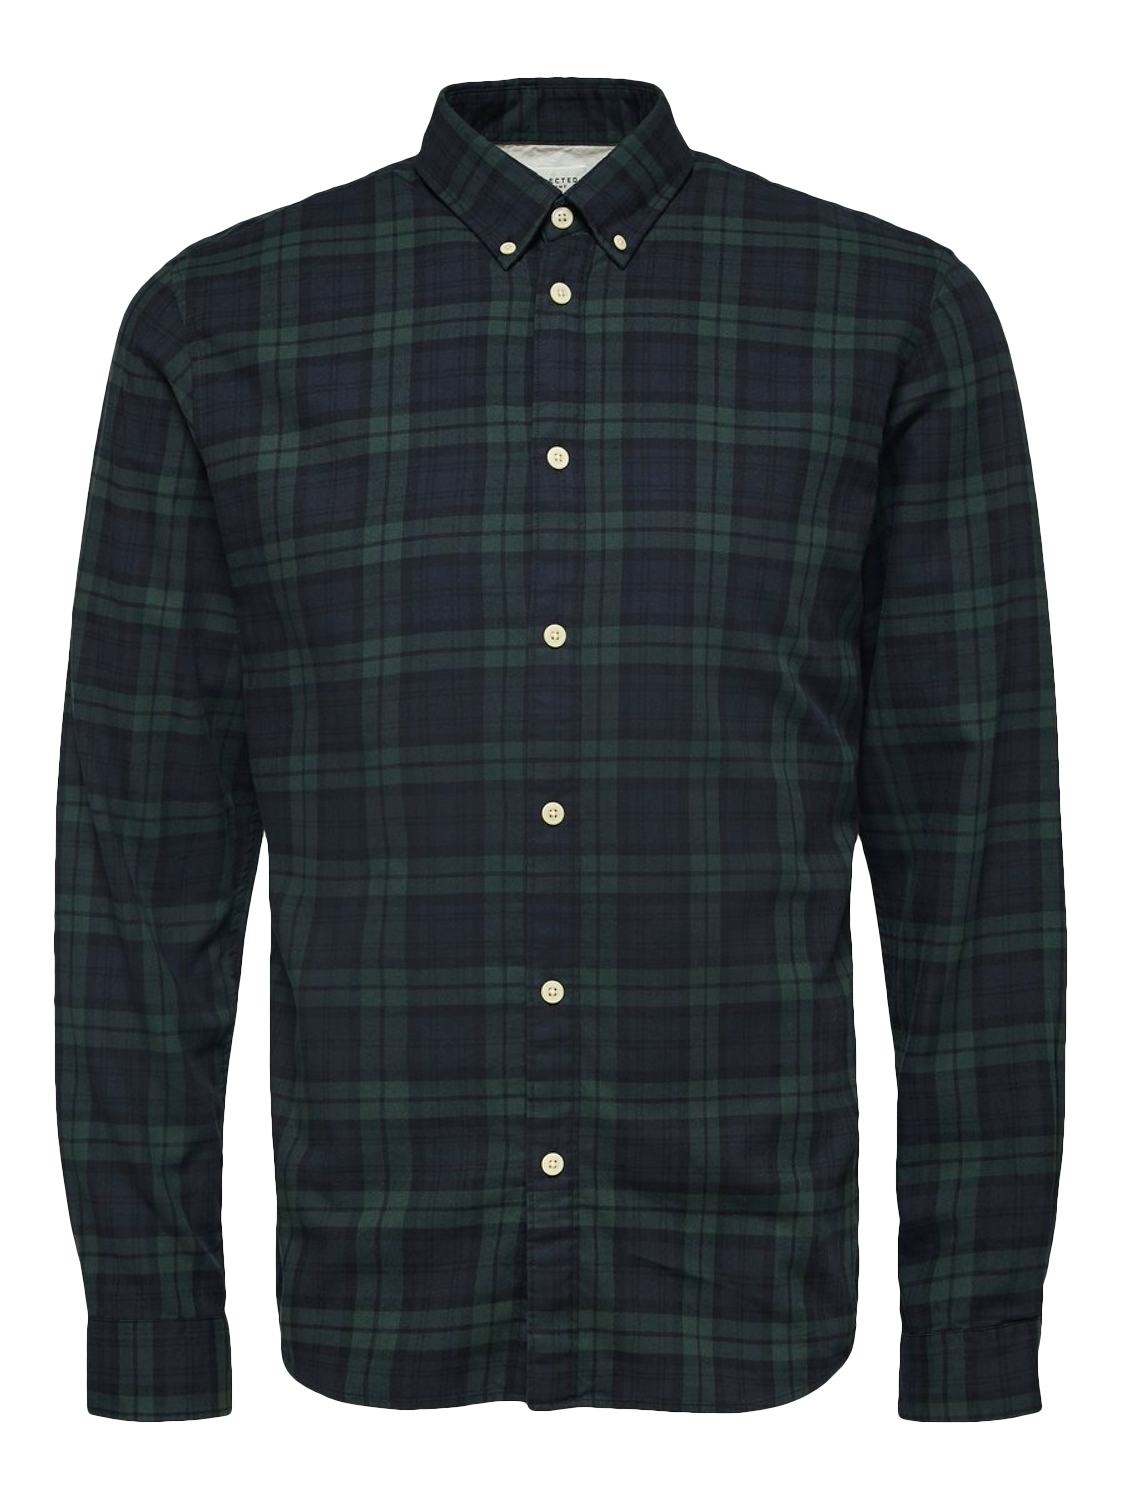 Selected Skjorte - Slhslimhouston shirt Rosin Checks | GATE 36 Hobro